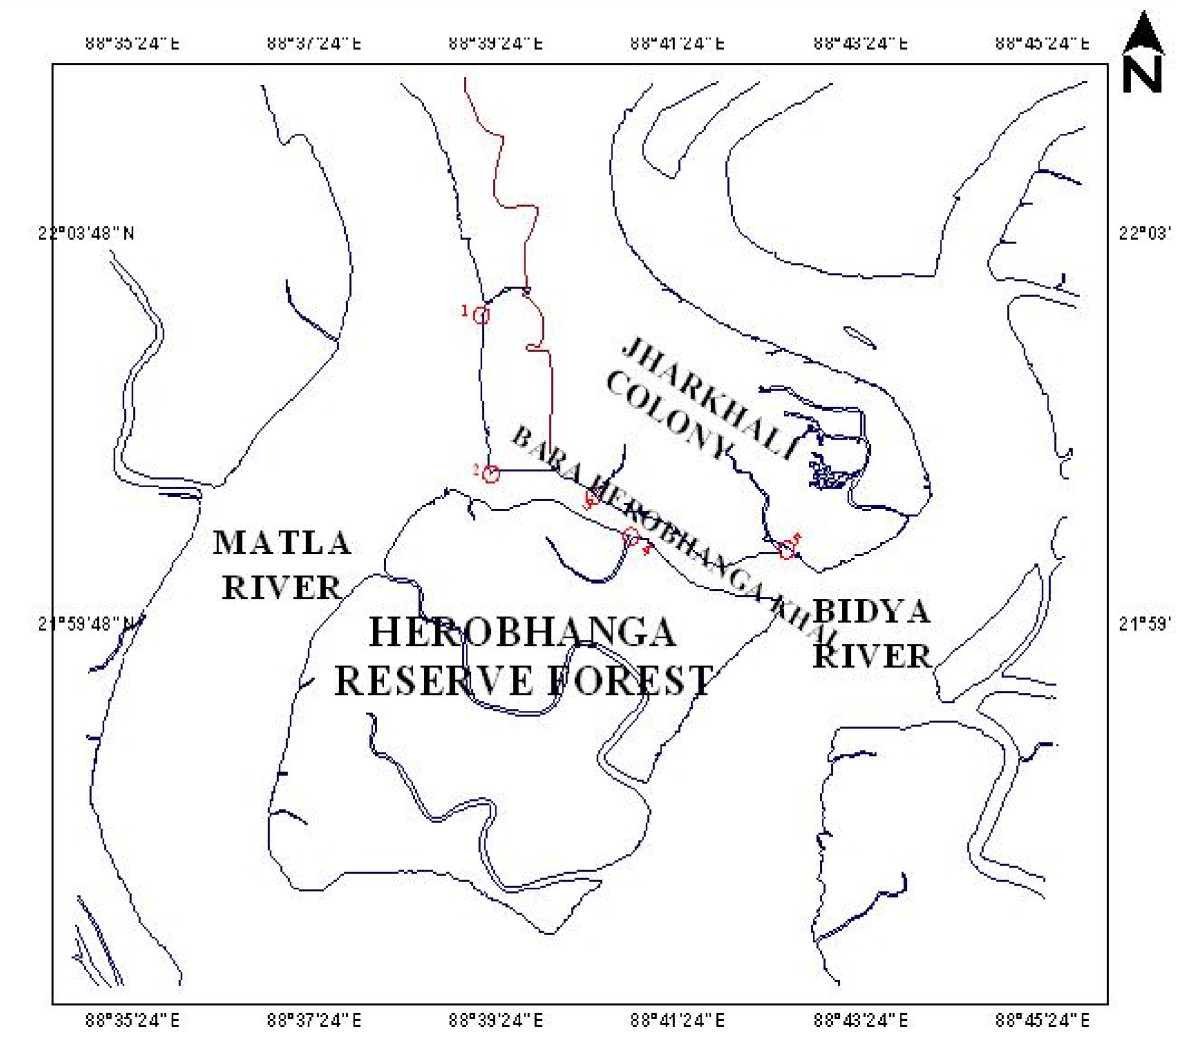 http://static-content.springer.com/image/art%3A10.1186%2F1746-1448-6-8/MediaObjects/12999_2010_Article_68_Fig1_HTML.jpg